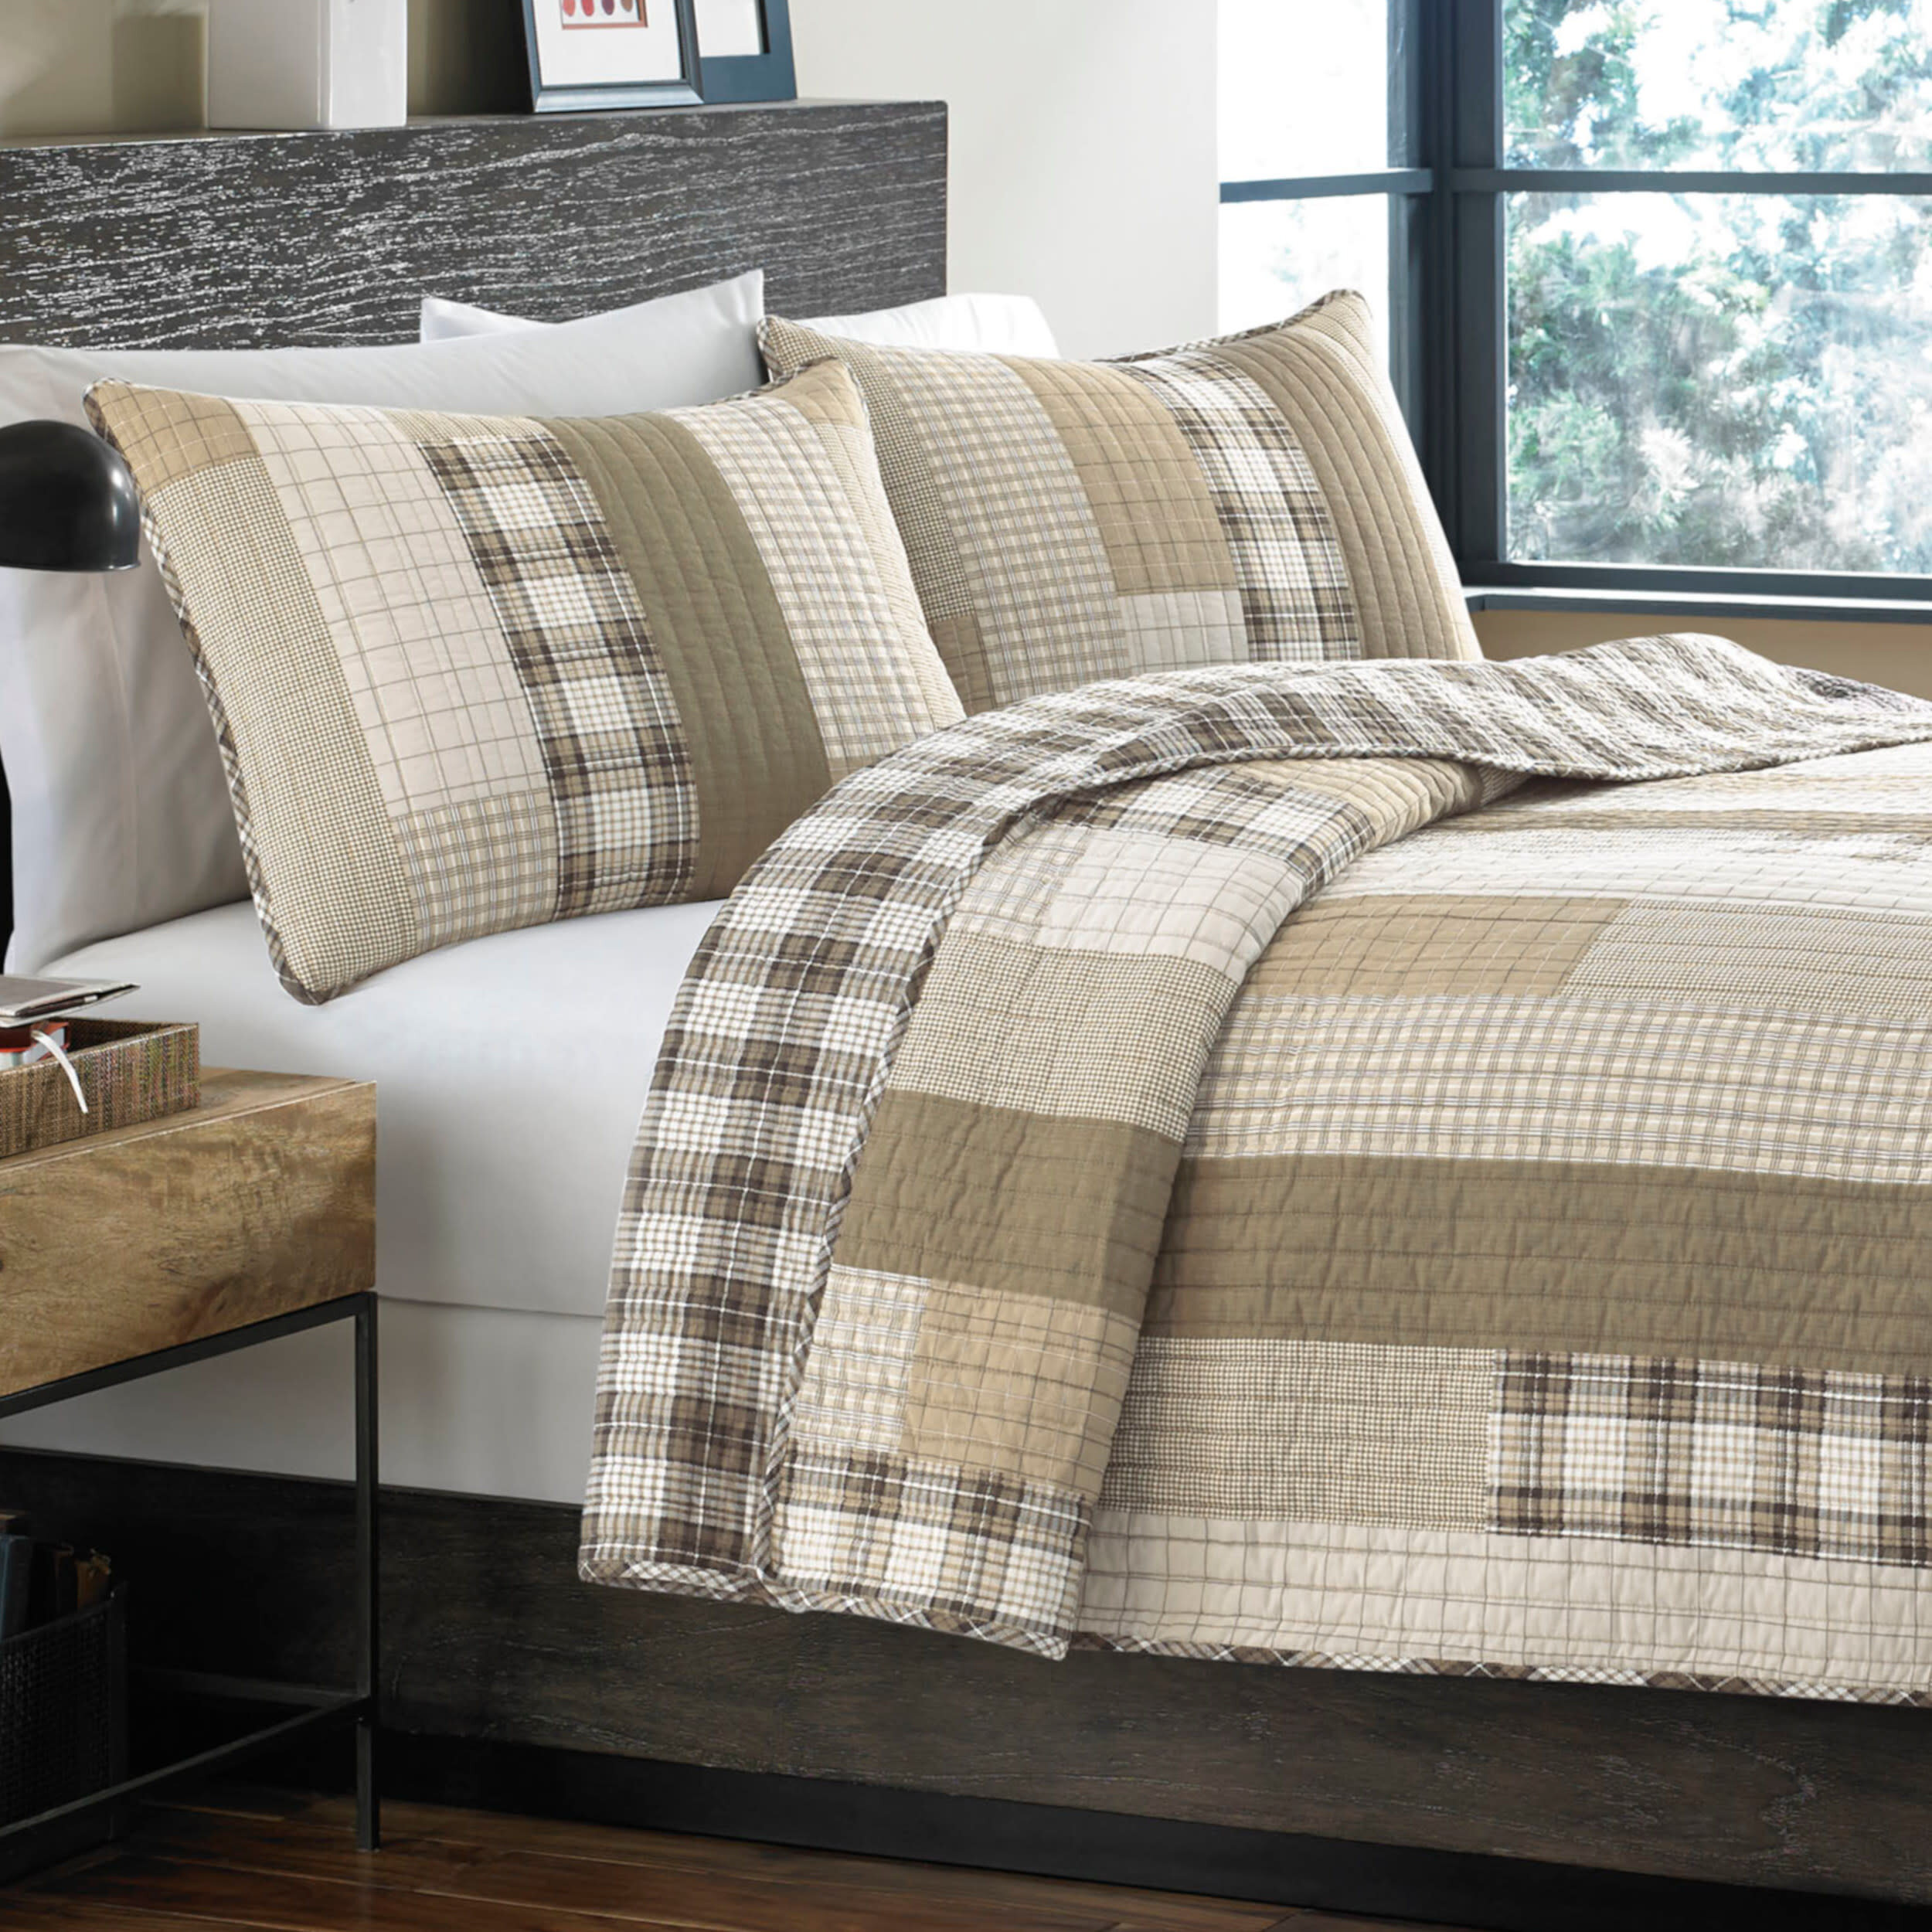 100 Cotton Percale Twin Bedding You Ll Love In 2021 Wayfair